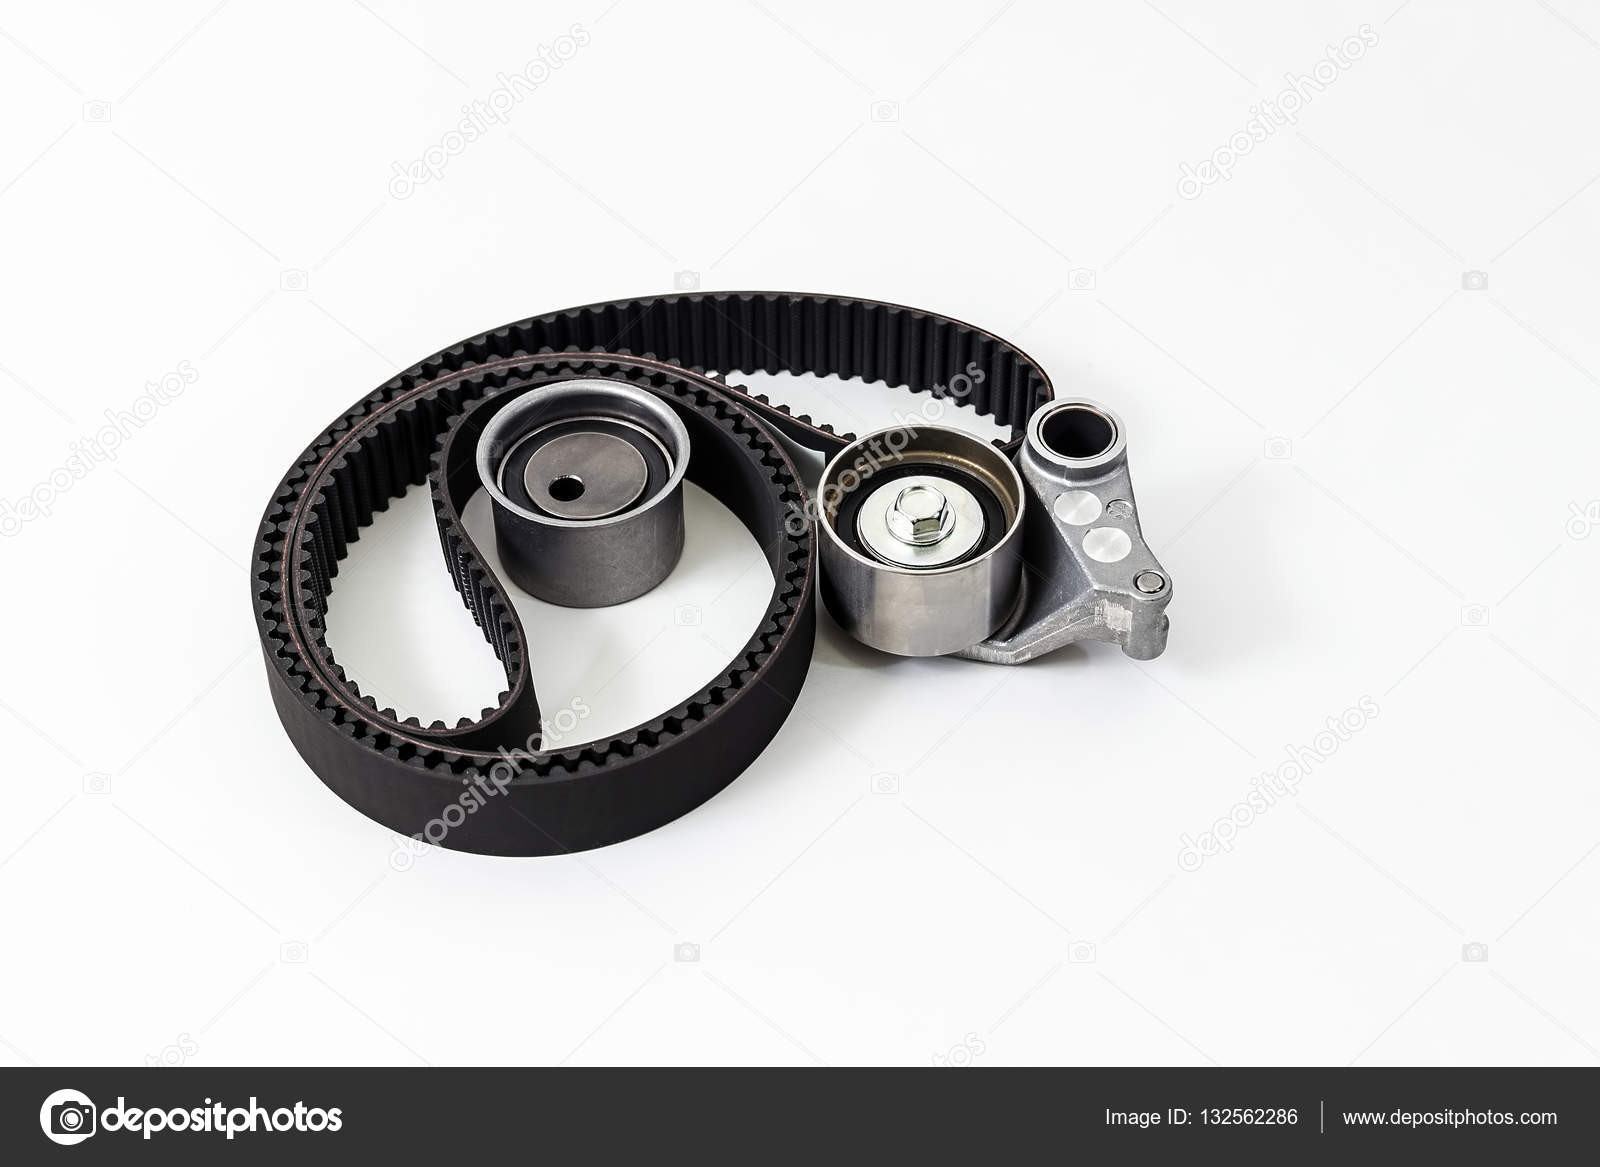 Kit Of Timing Belt With Rollers On A White Background Isolated Auto Gear Parts Spare